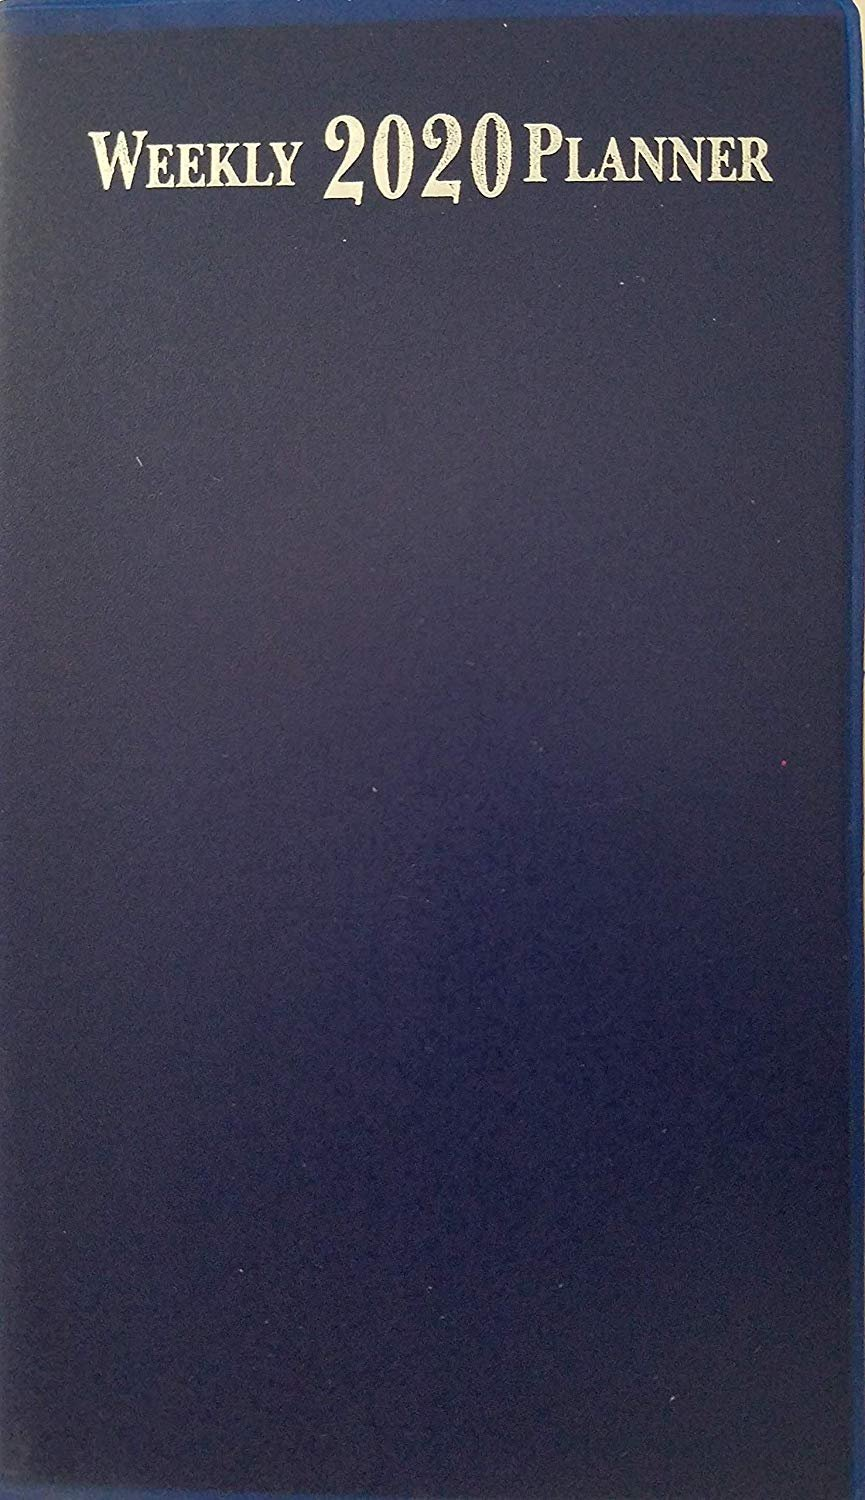 """2020 Weekly Pocket Appointment Planner Day-Timer 6.5"""" x 3.75"""", Select: Color (Blue)"""